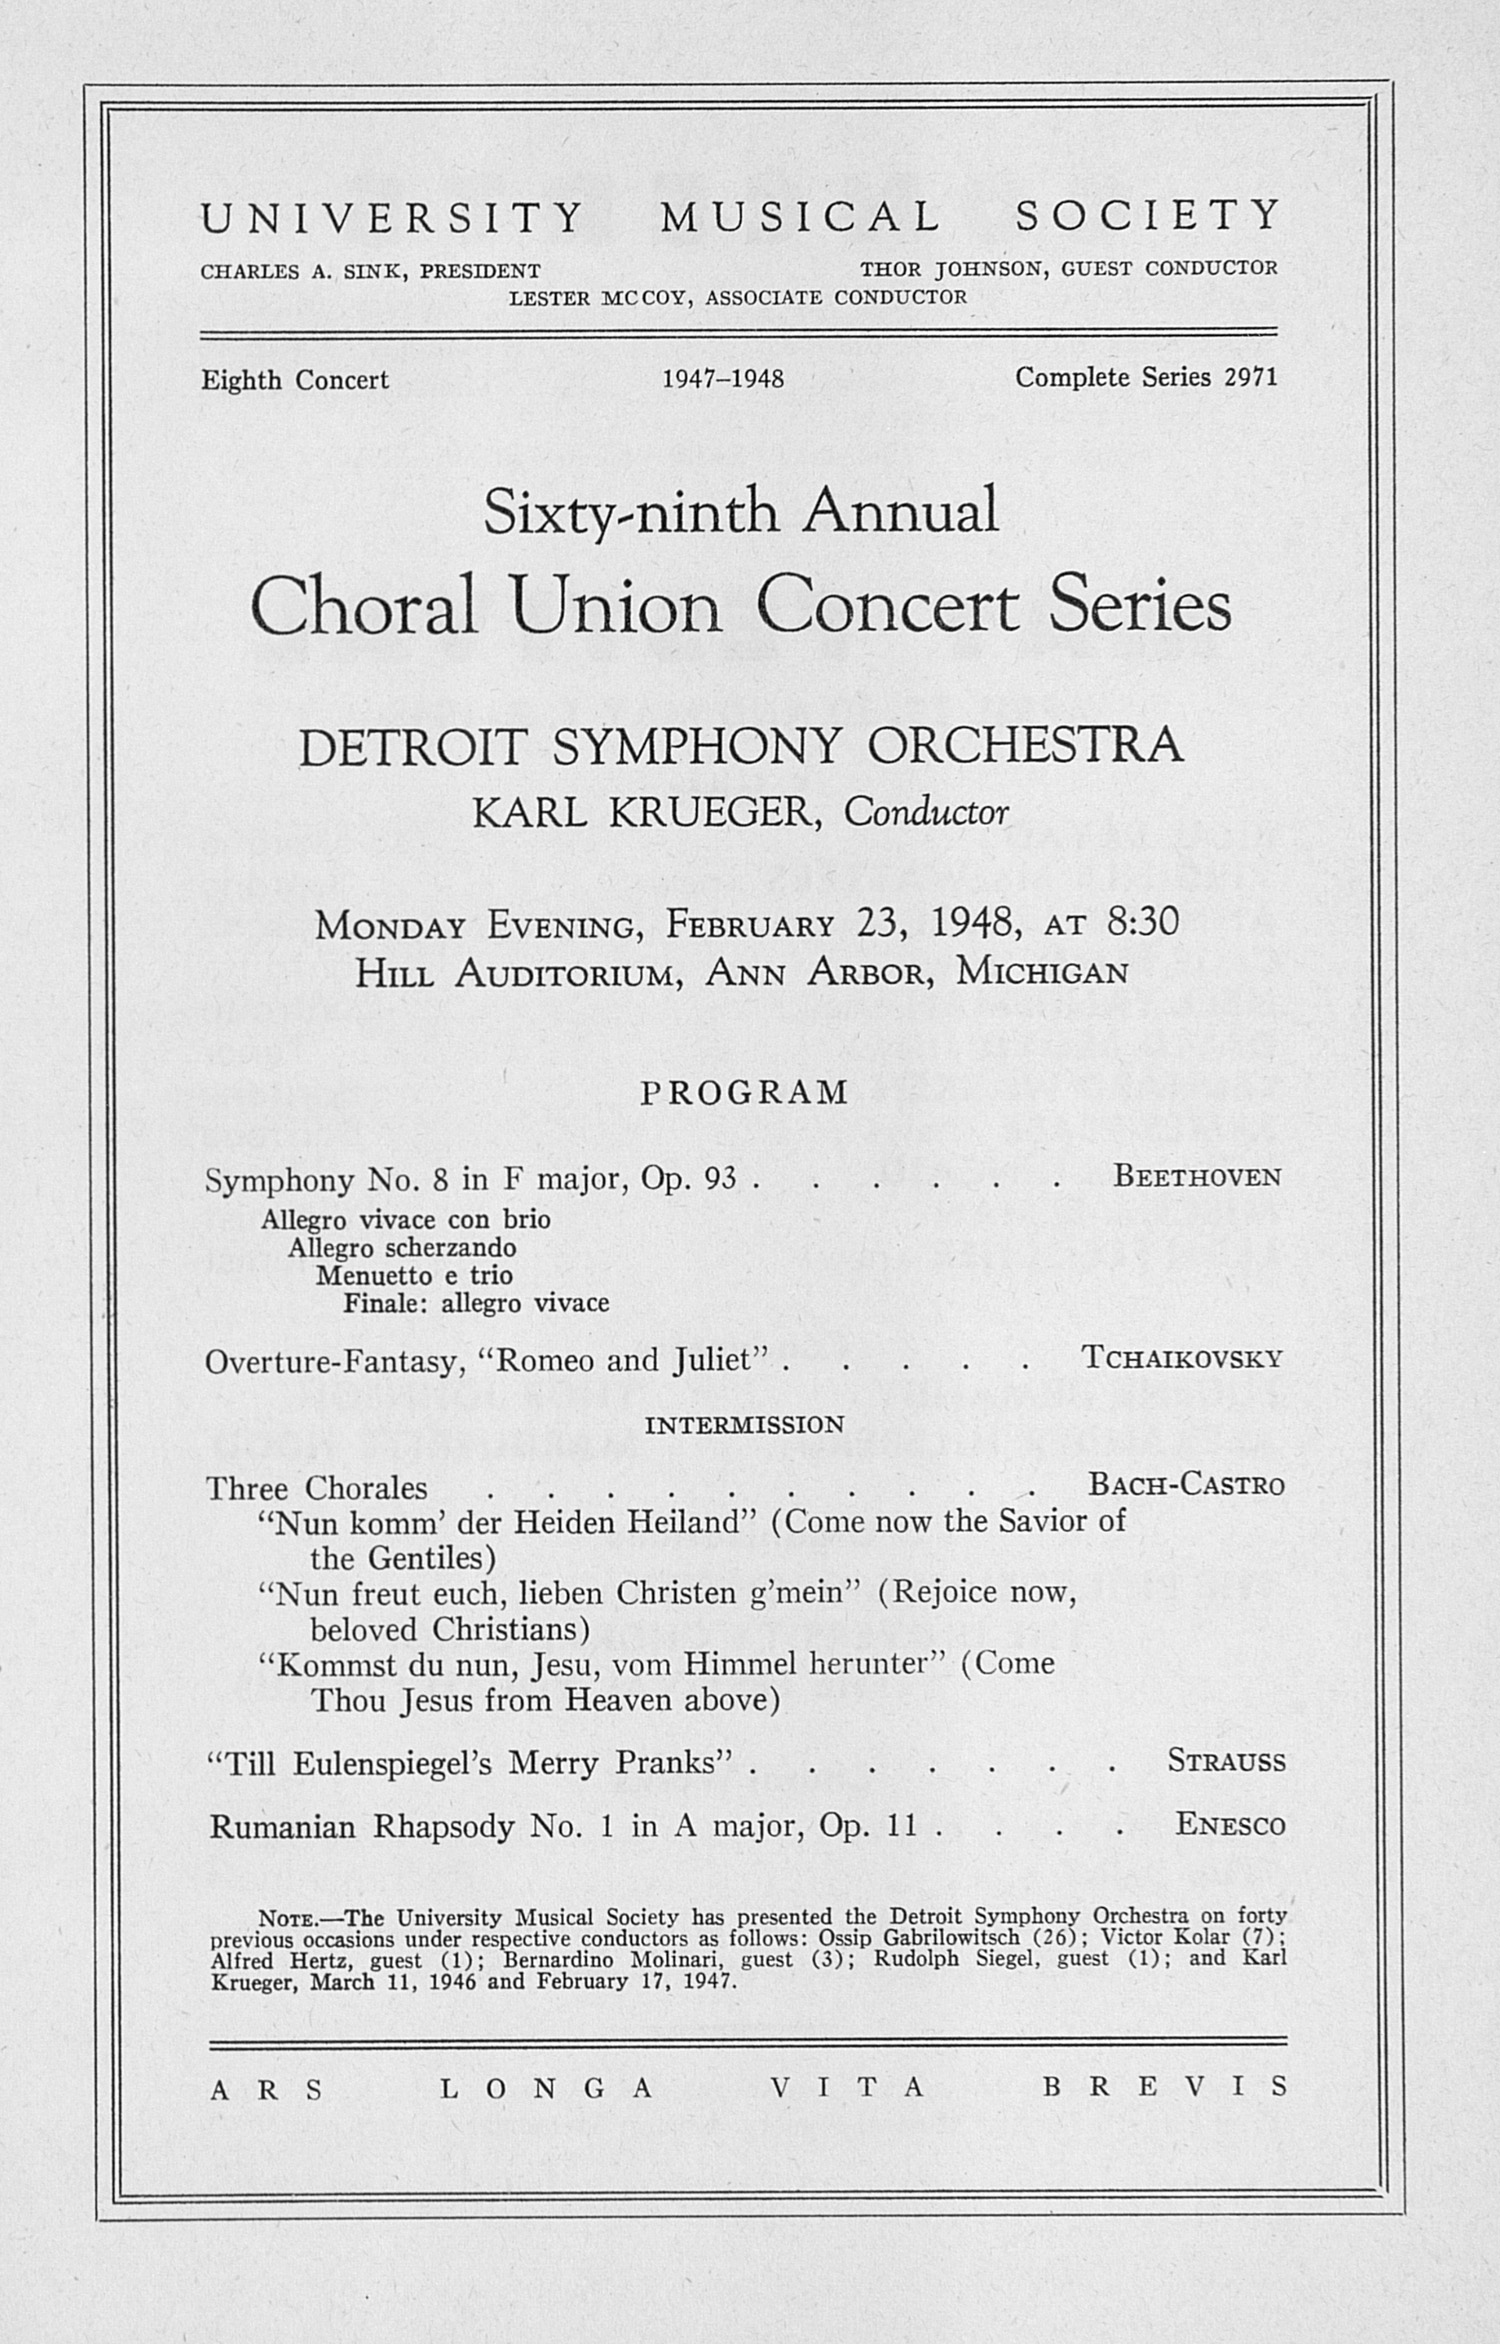 UMS Concert Program, February 23, 1948: Sixty-ninth Annual Choral Union Concert Series -- Detroit Symphony Orchestra image